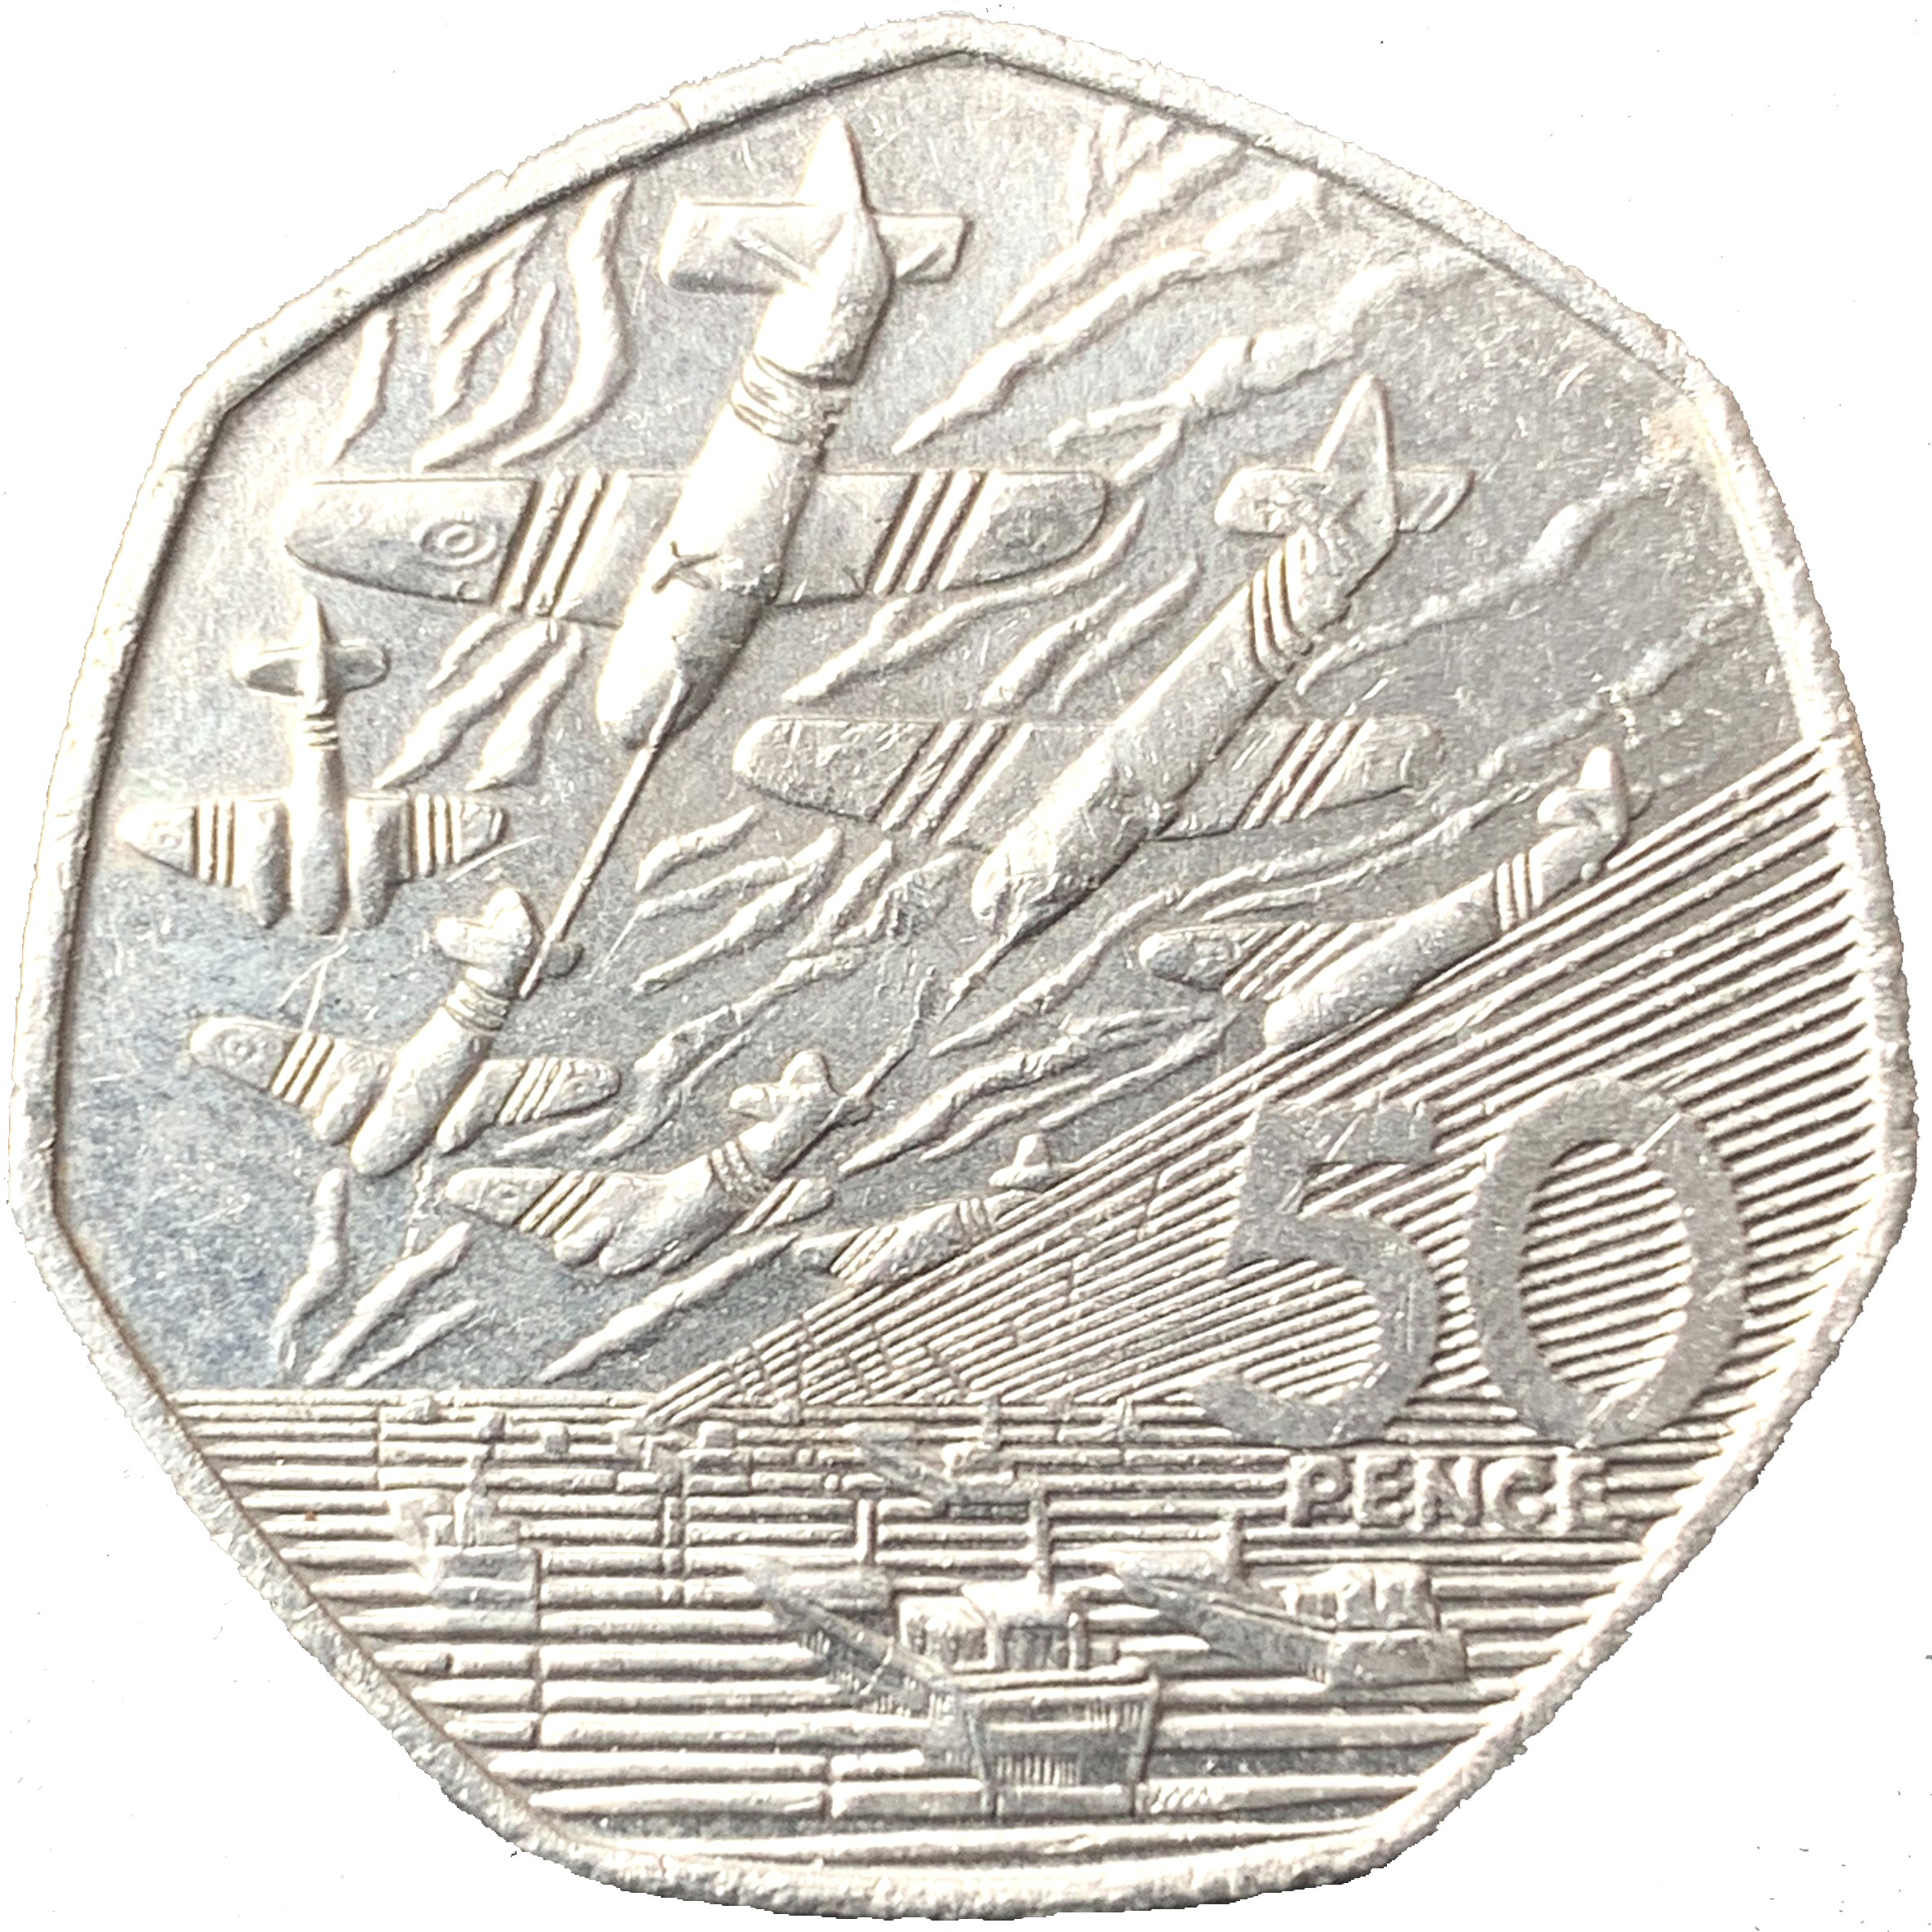 1994 D-Day Landings 50p [Circulated]